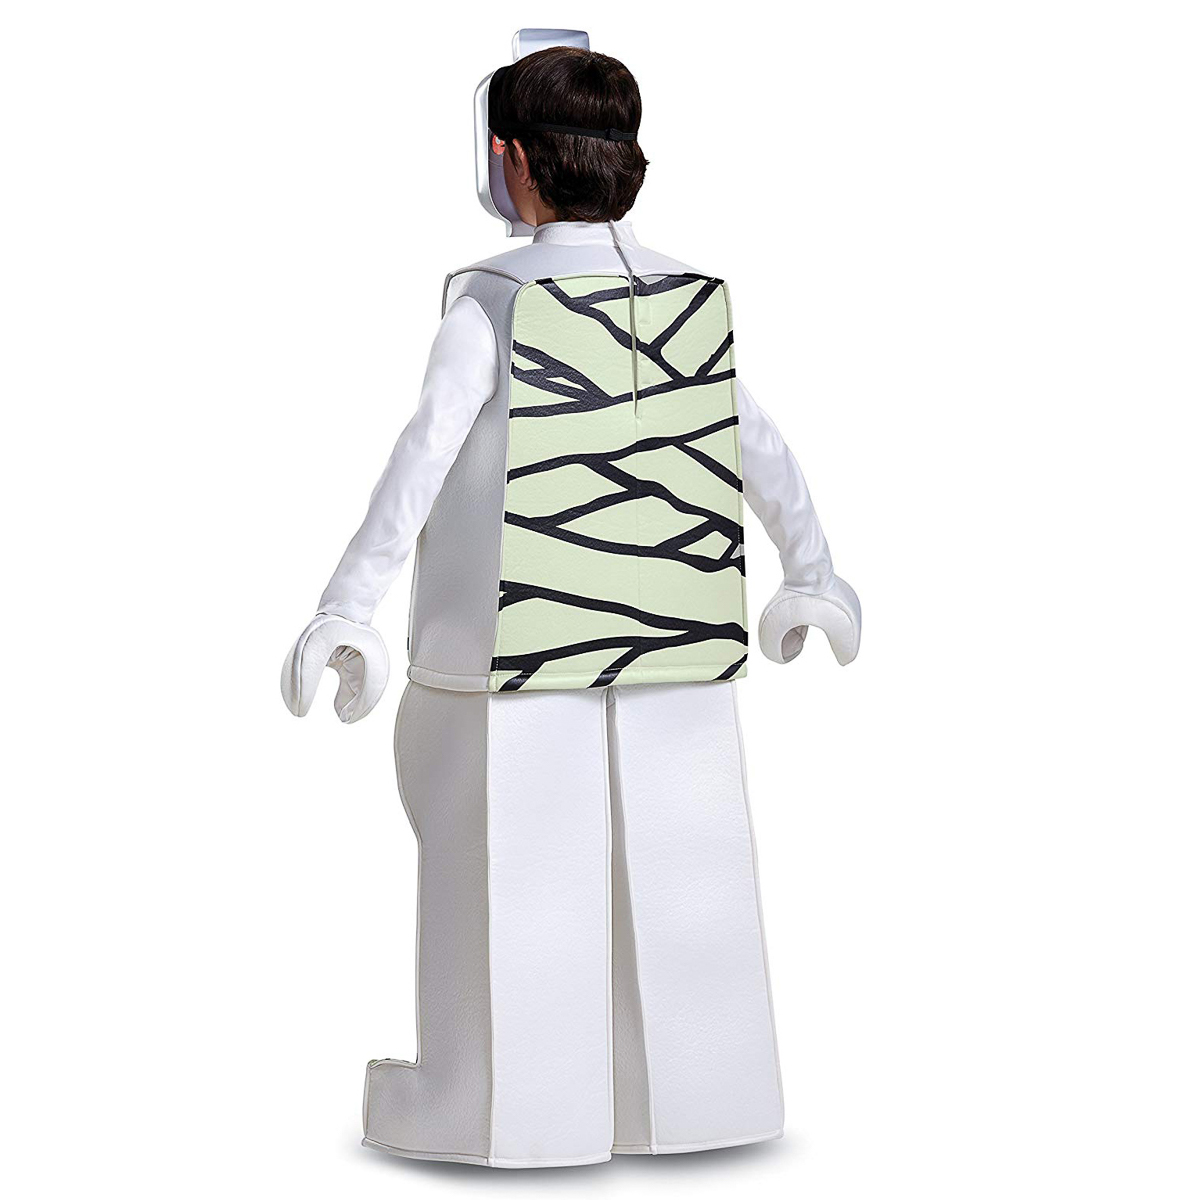 Large White 10-12 Disguise Costumes Lego Mummy Classic Costume